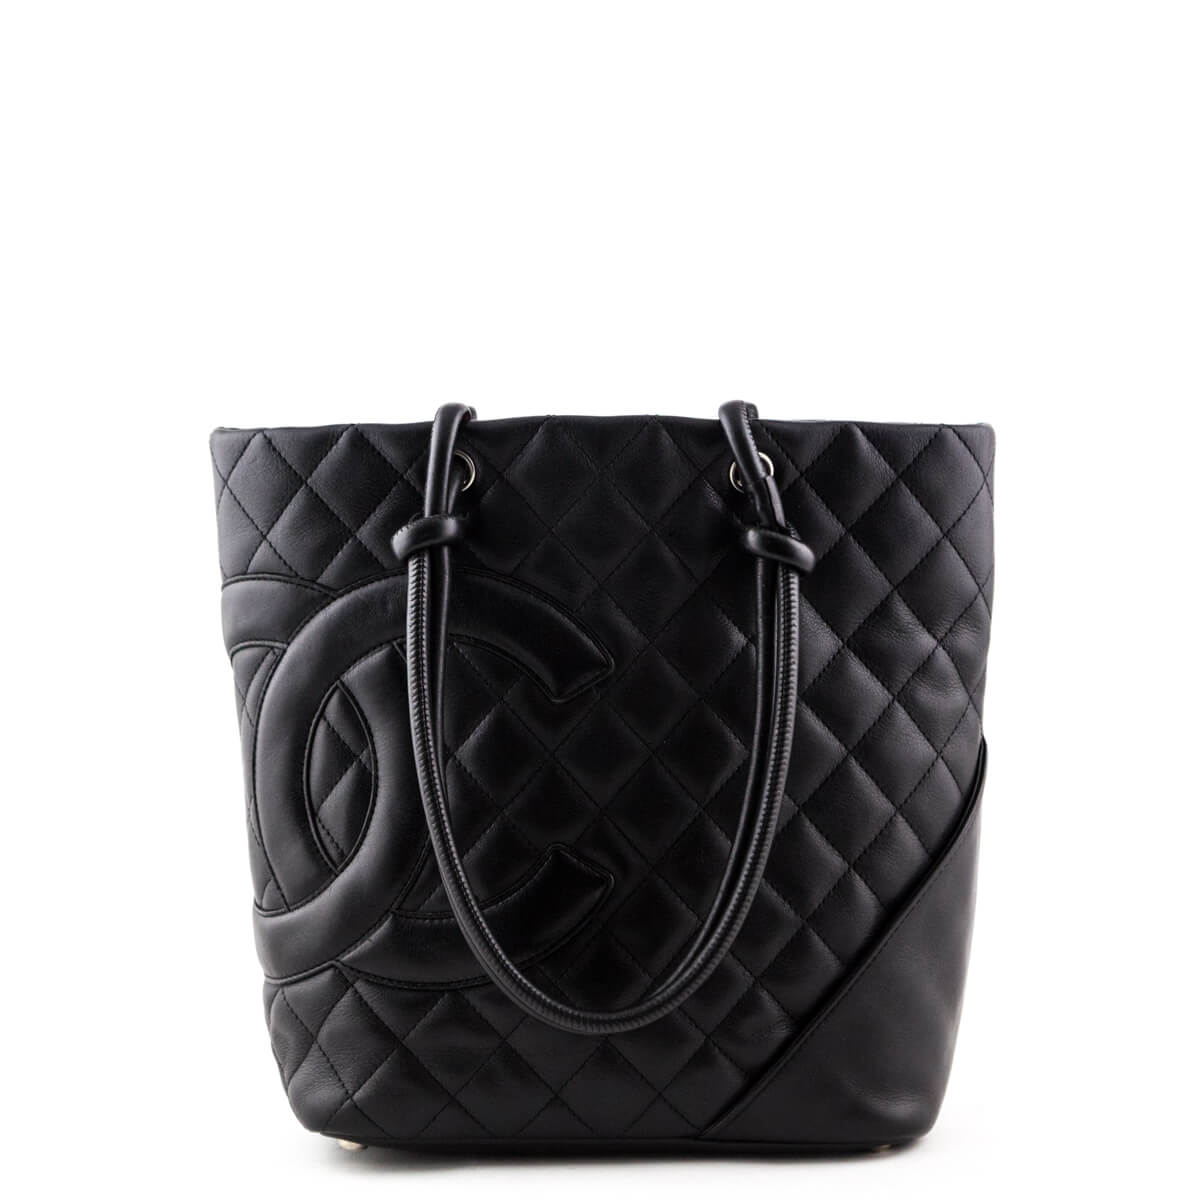 8205a2e74eb5 Chanel Black Calfskin Medium Cambon Ligne Bucket Tote - LOVE that BAG -  Preowned Authentic Designer ...